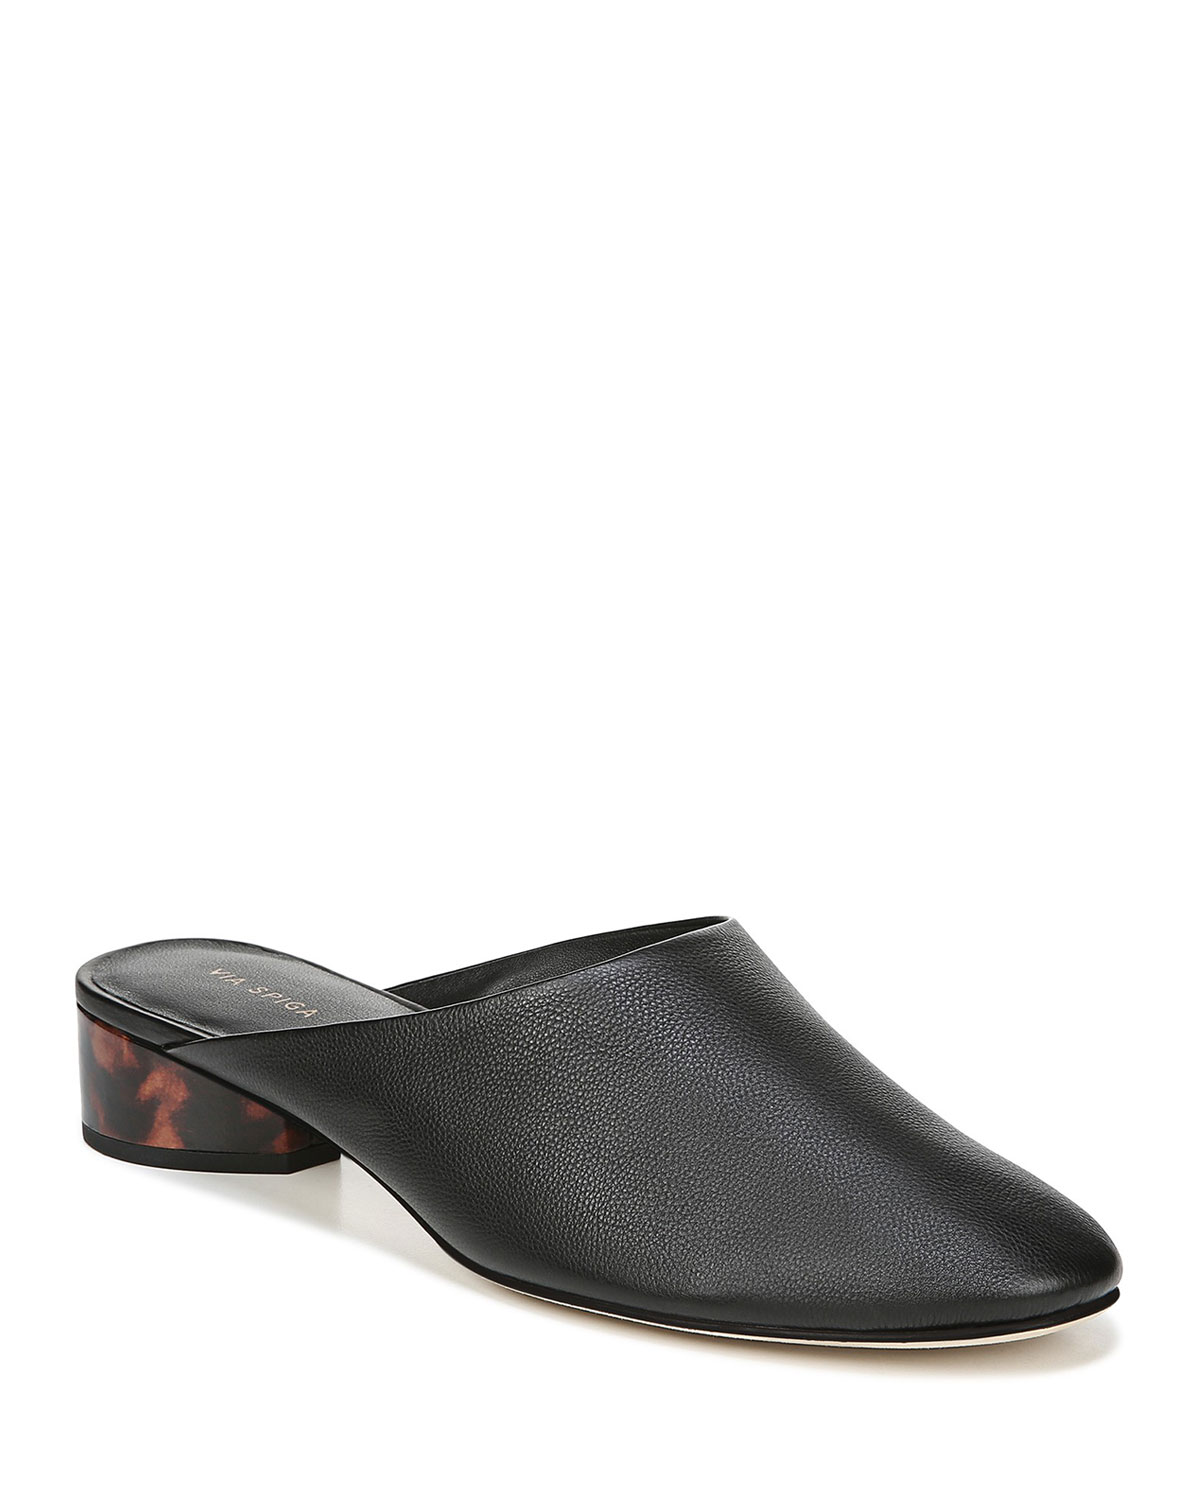 Chaney Round-Toe Mule